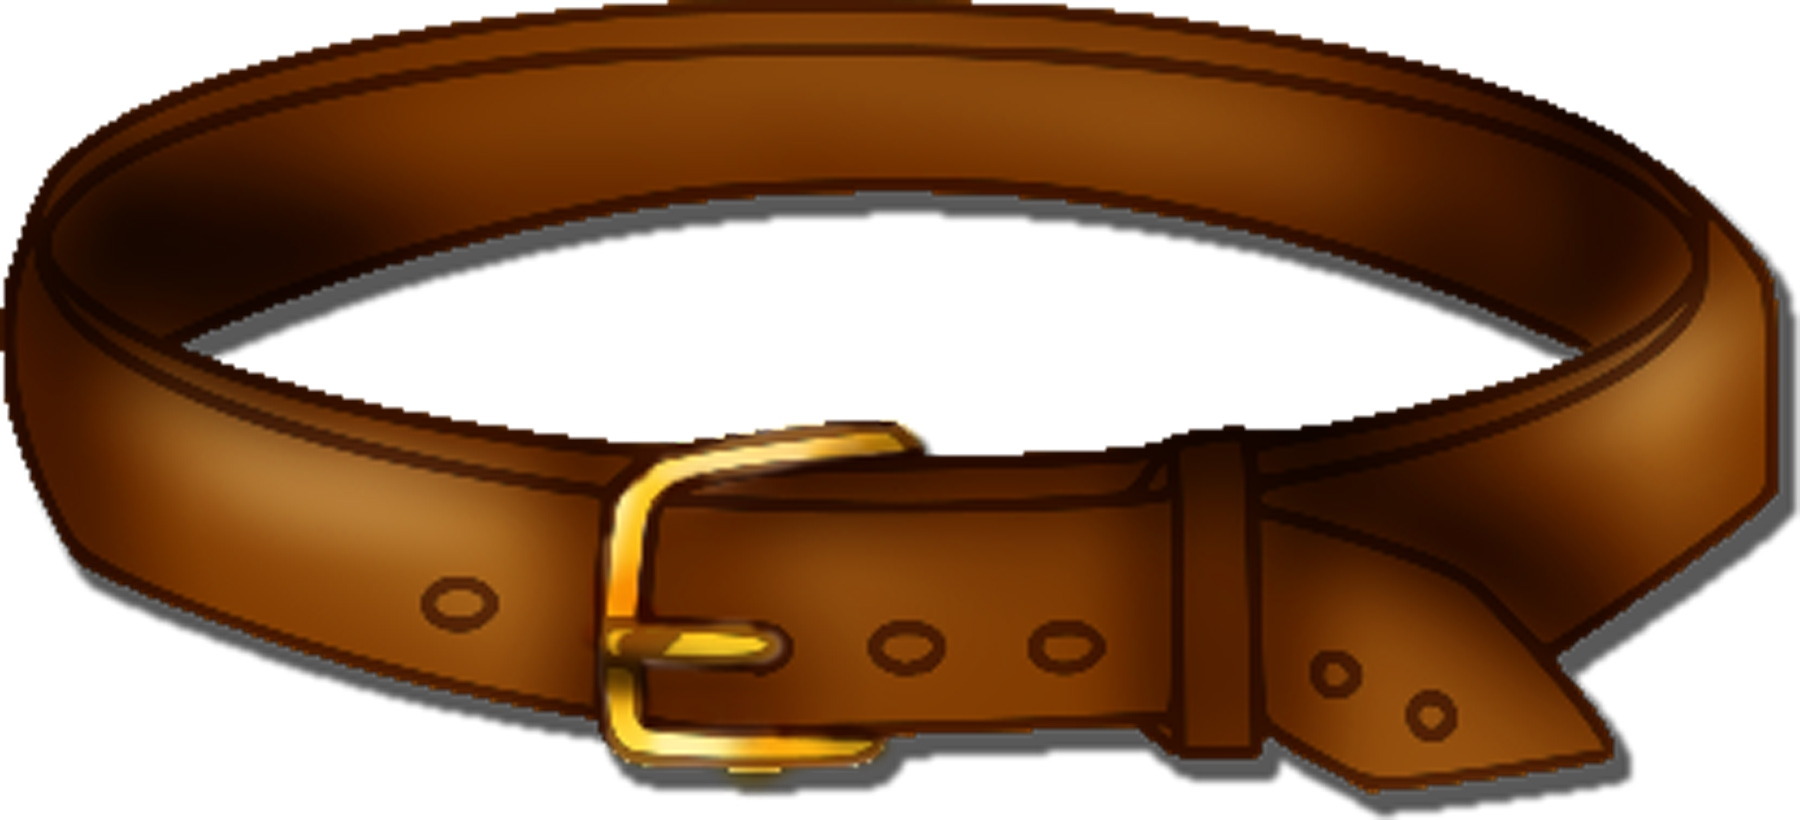 New collection digital i. Belt clipart